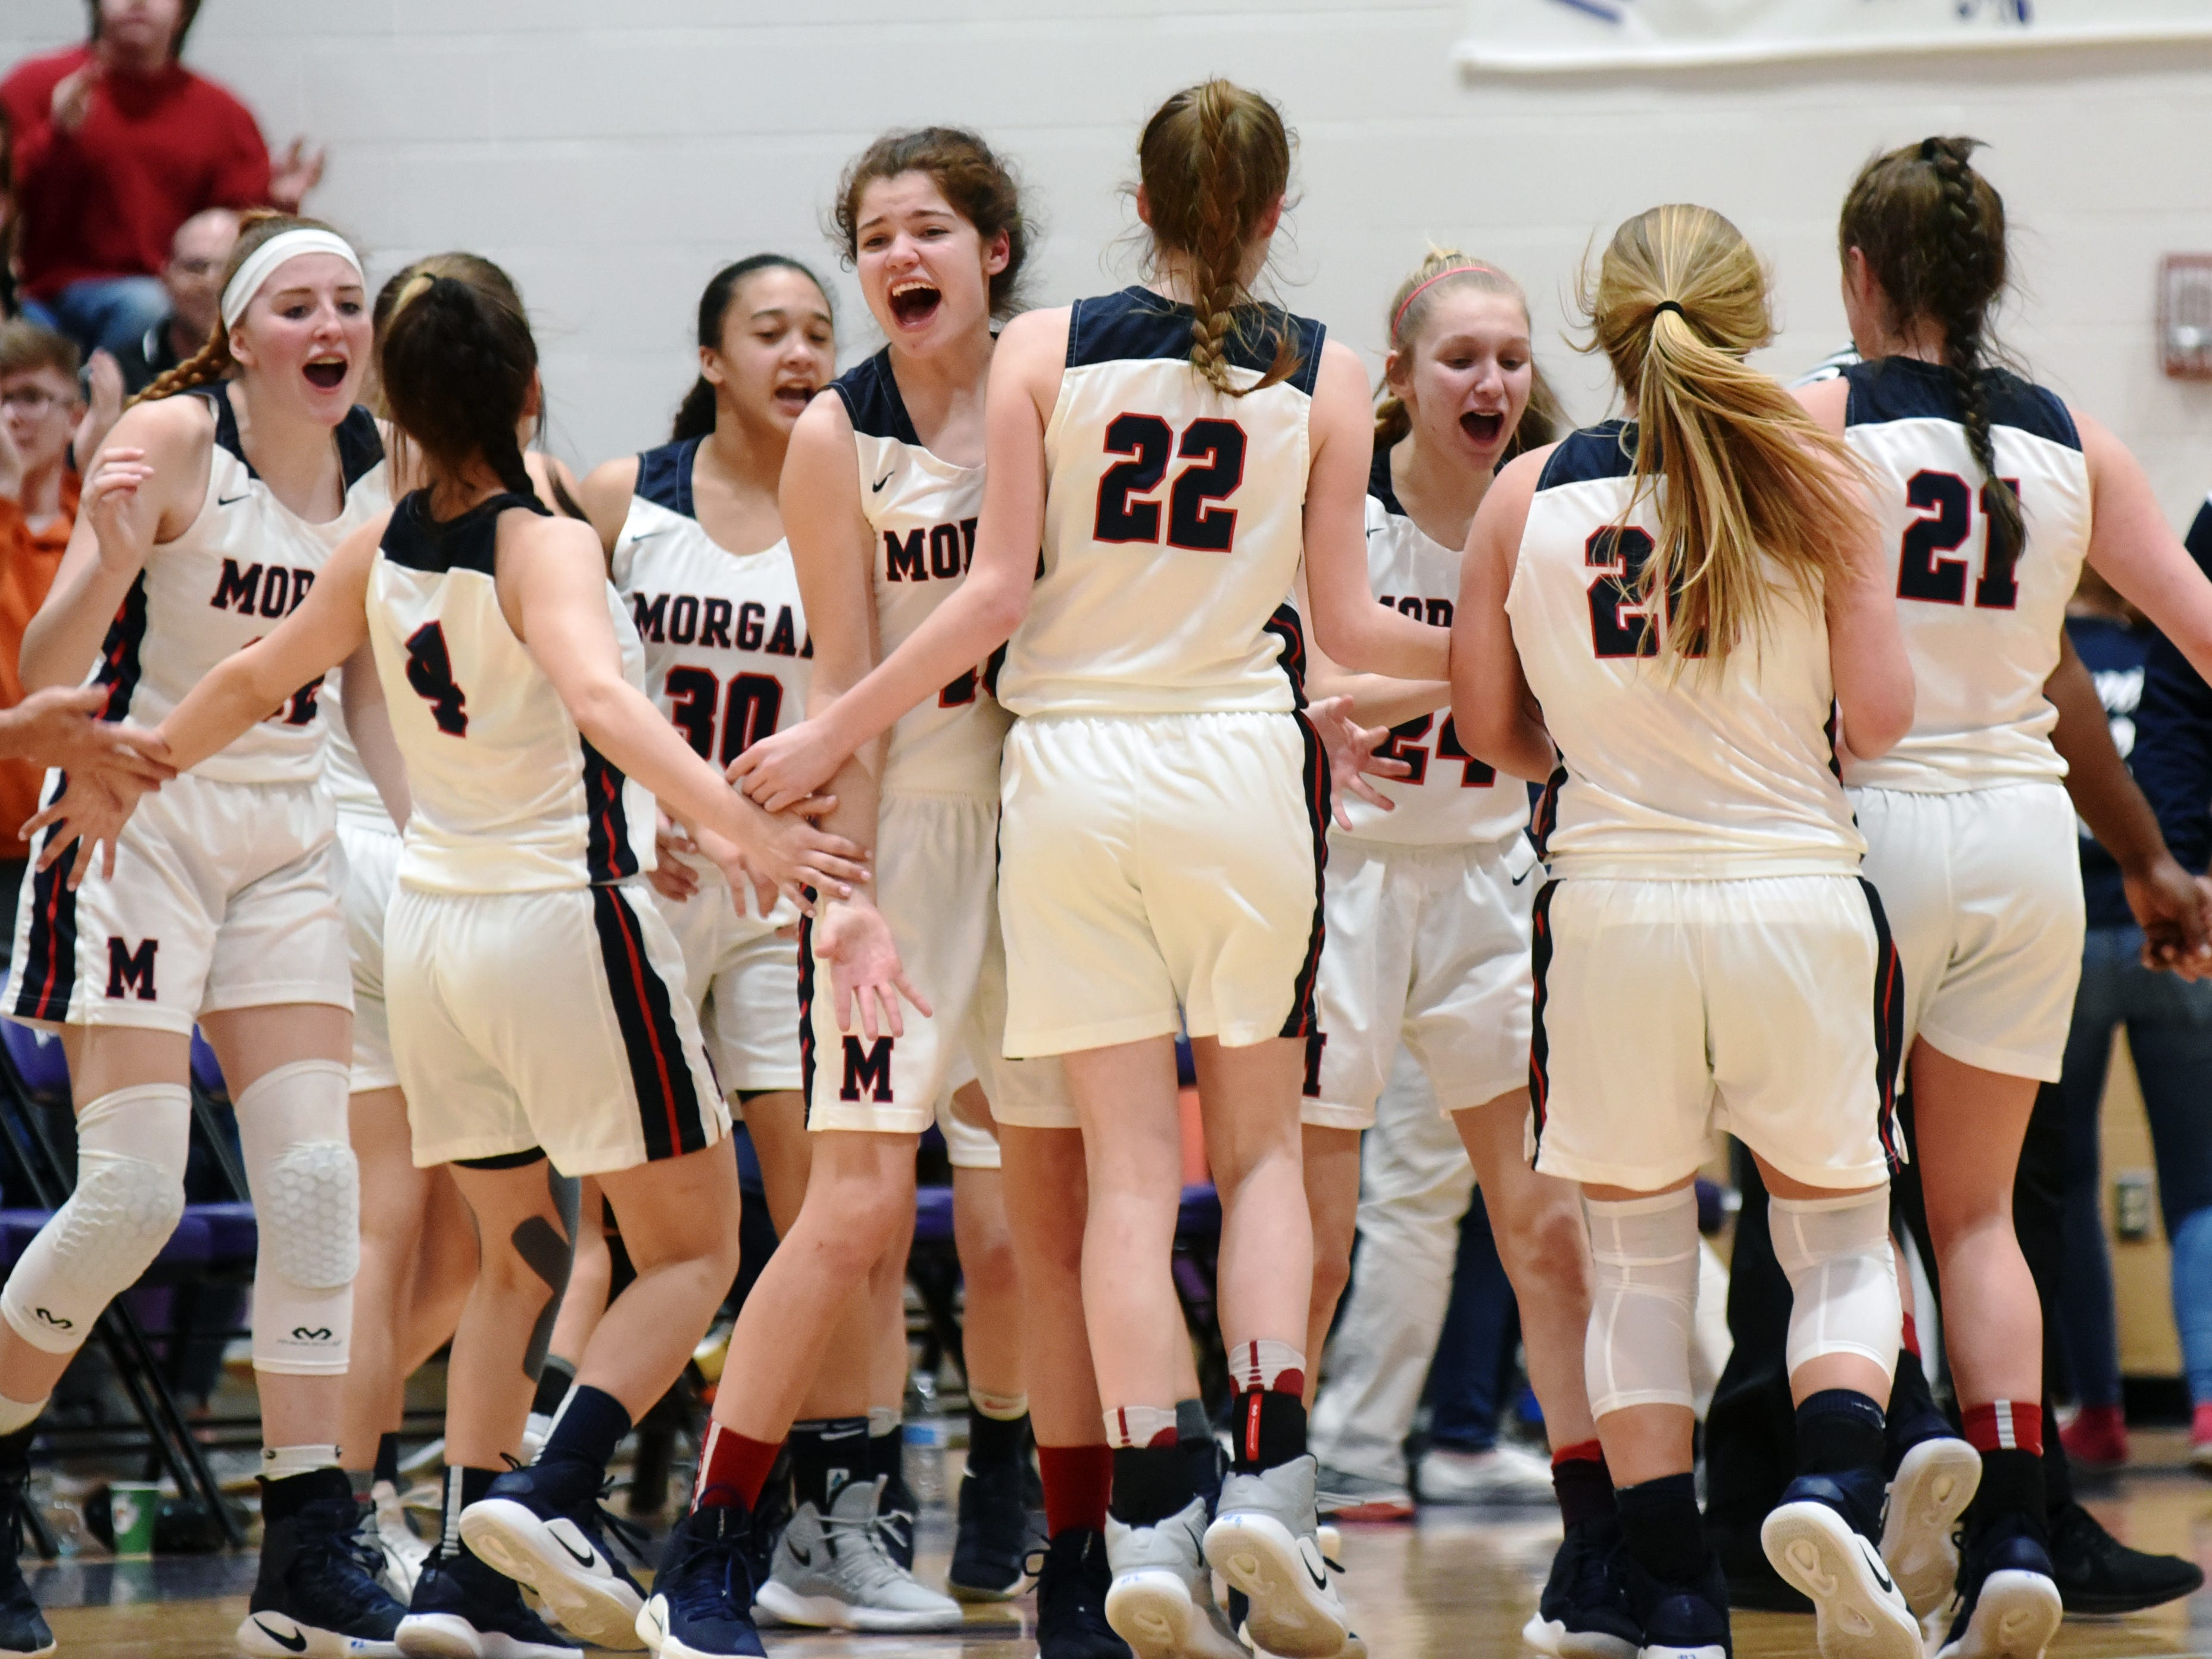 Players celebrate during a timeout in the second quarter of Morgan's 56-55 loss to Wheelersburg in a Division III regional semifinal at Logan.